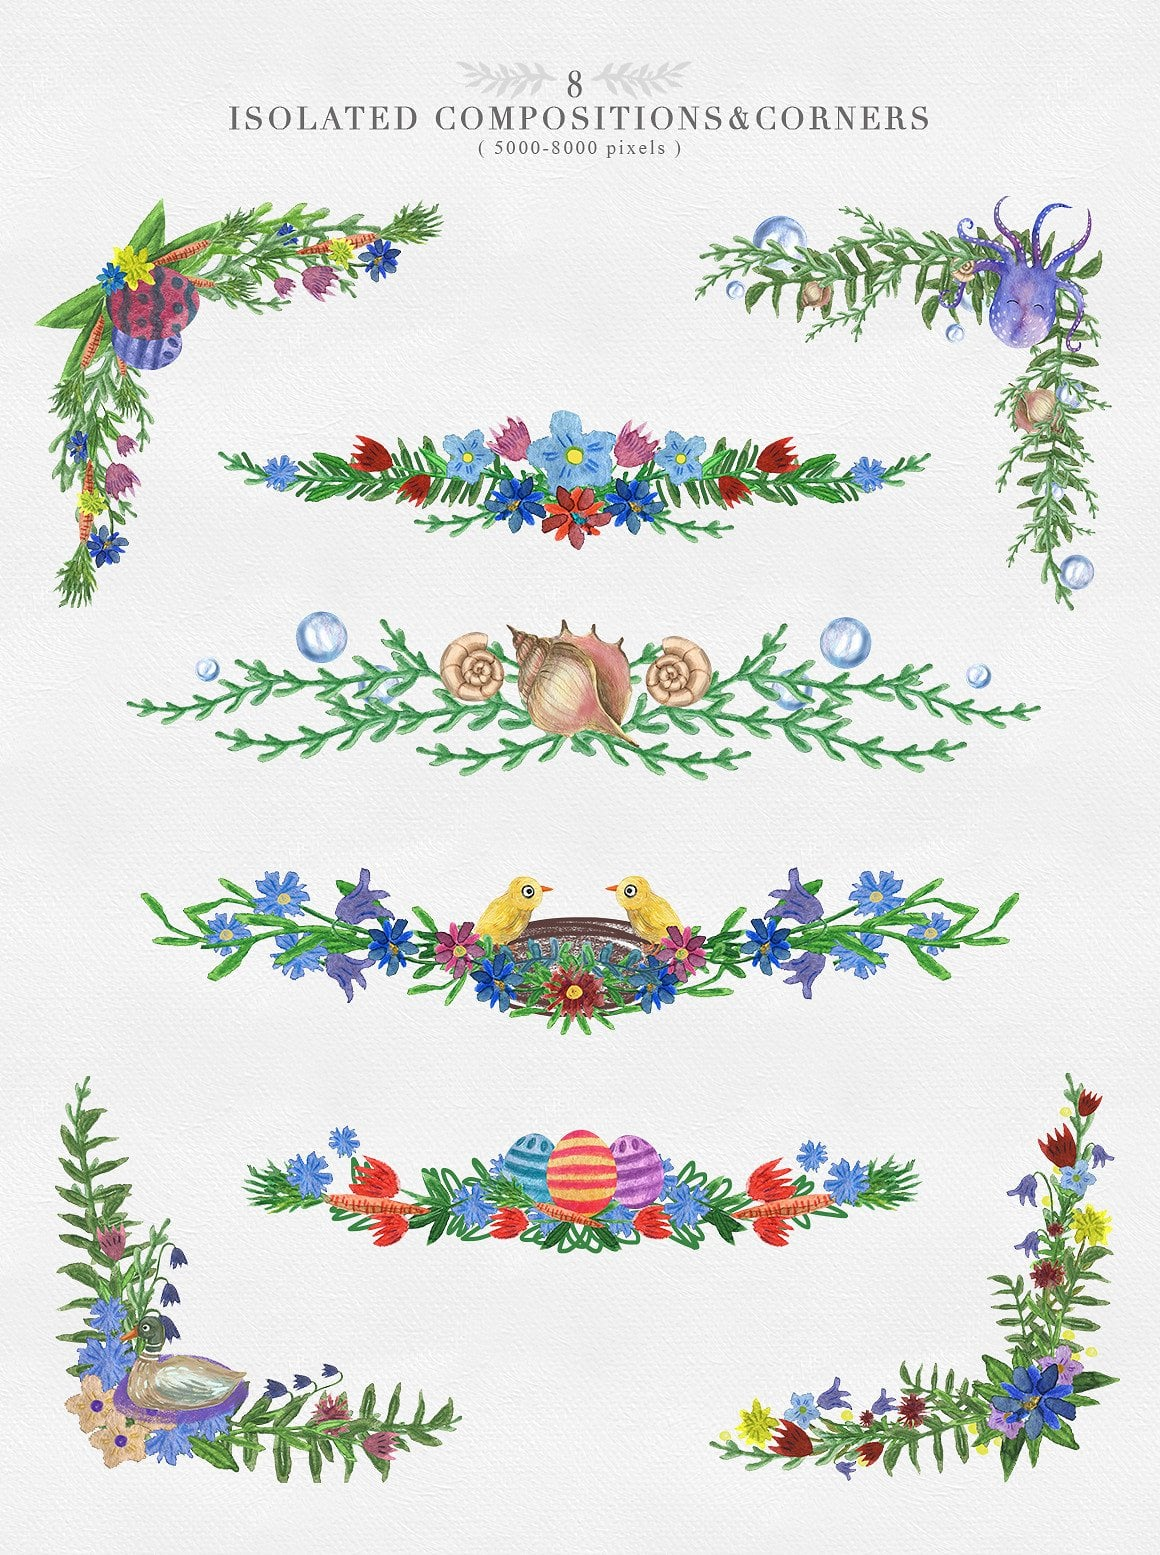 Easter Animals Watercolor Collection: 65 clipart elements